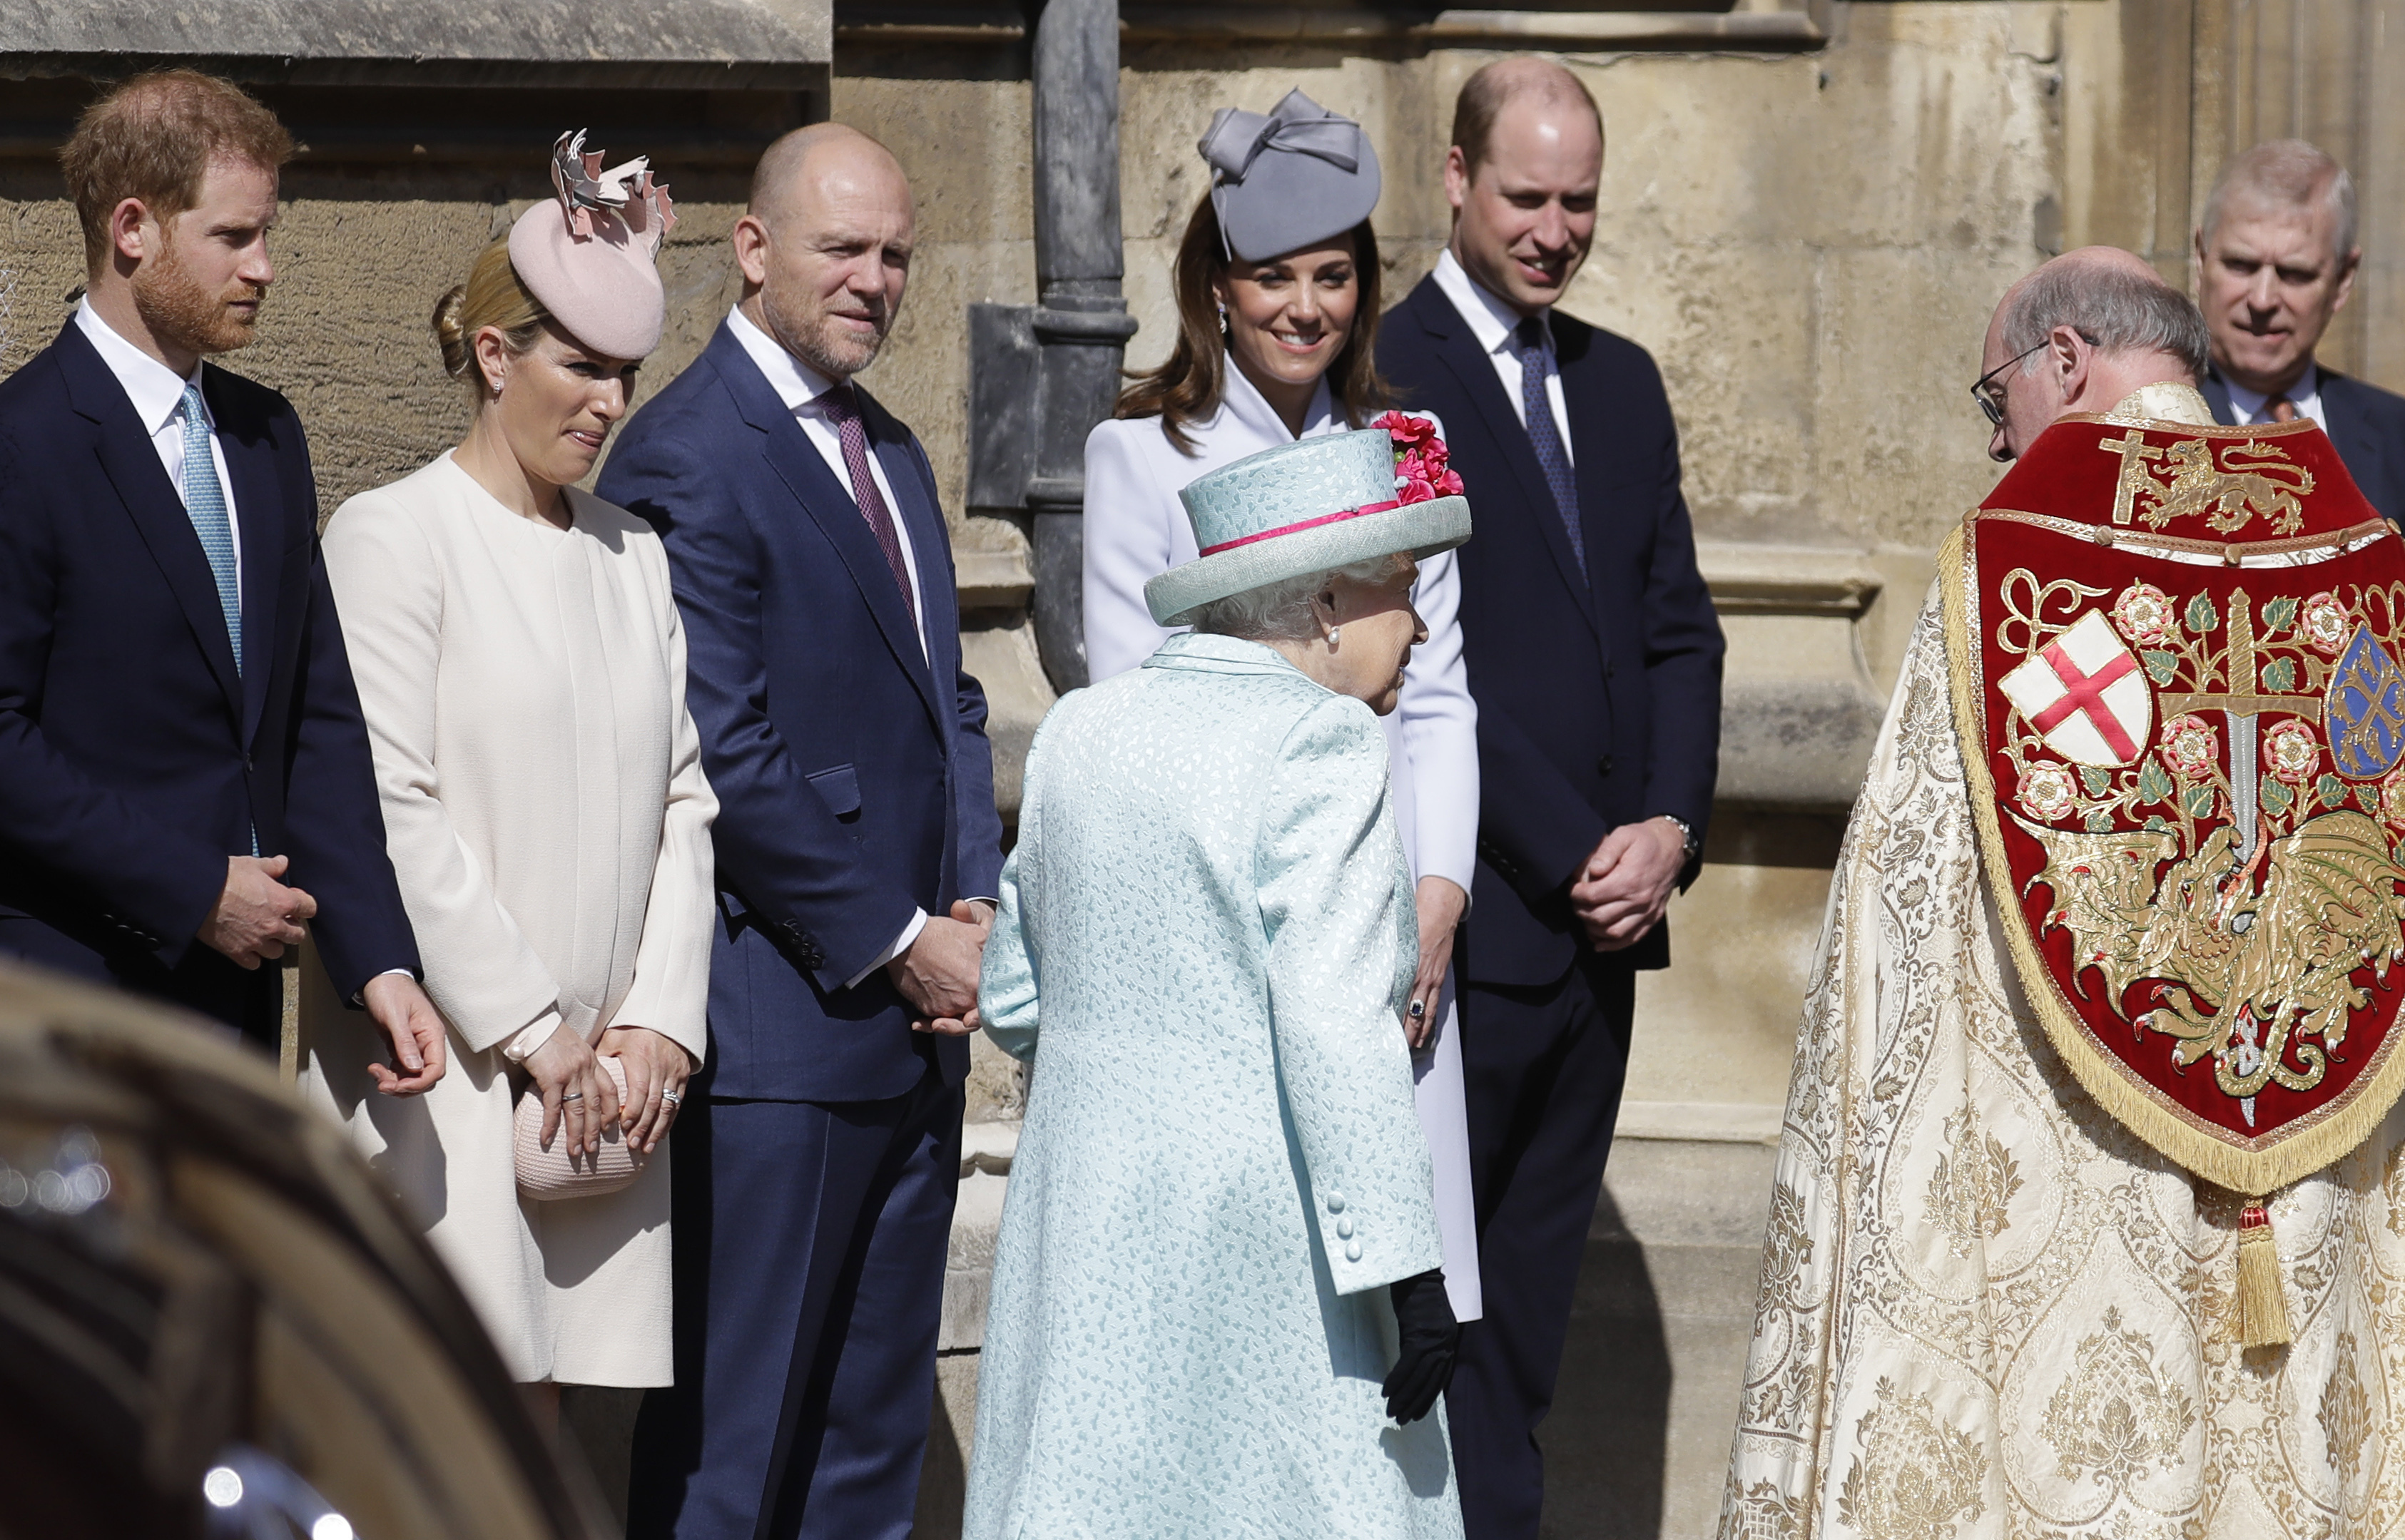 (left to right) The Duke of Sussex, Zara Tindall, Mike Tindall, the Duchess of Cambridge and the Duke of Cambridge greet Queen Elizabeth II as she arrives for the Easter Mattins Service at St George's Chapel, Windsor Castle, Windsor.